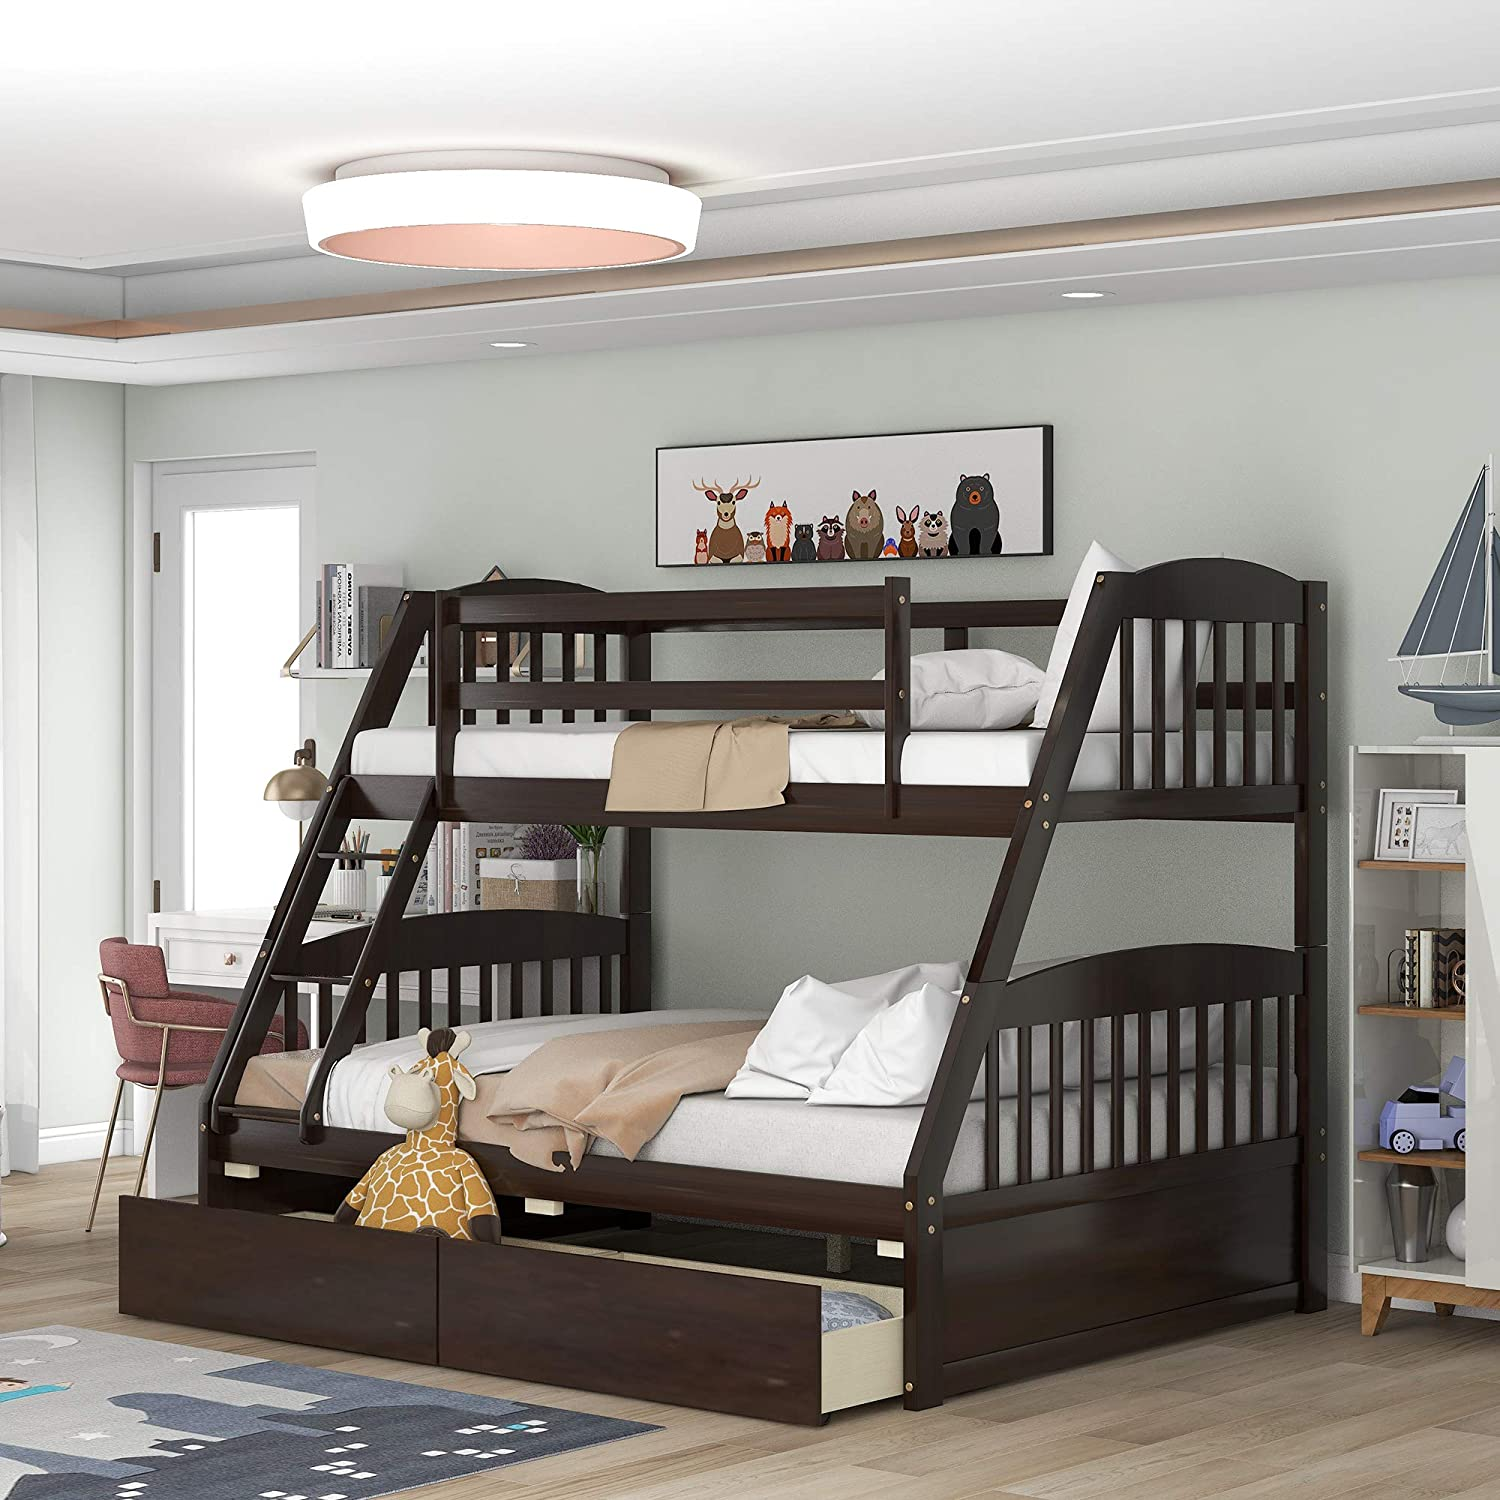 Best for Storage Drawers: Rhomtree Wood Twin Over Full Bunk Bed